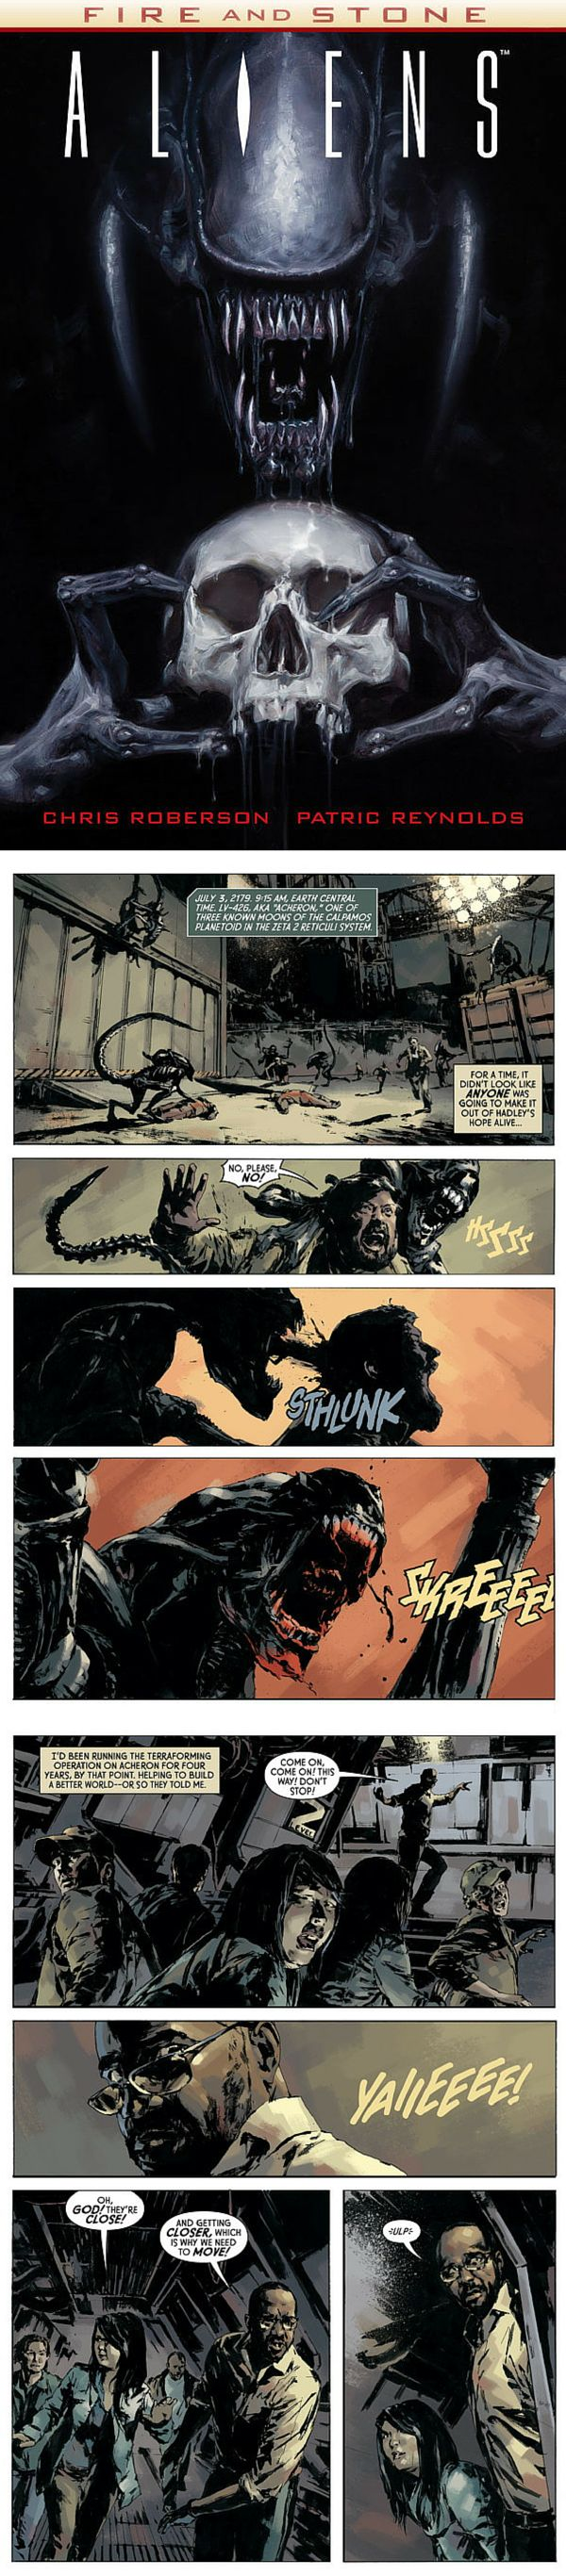 Aliens: Fire & Stone by Chris Roberson & Patric Reynolds Part 2 in the crossover Fire & Stone event from Dark Horse Comics